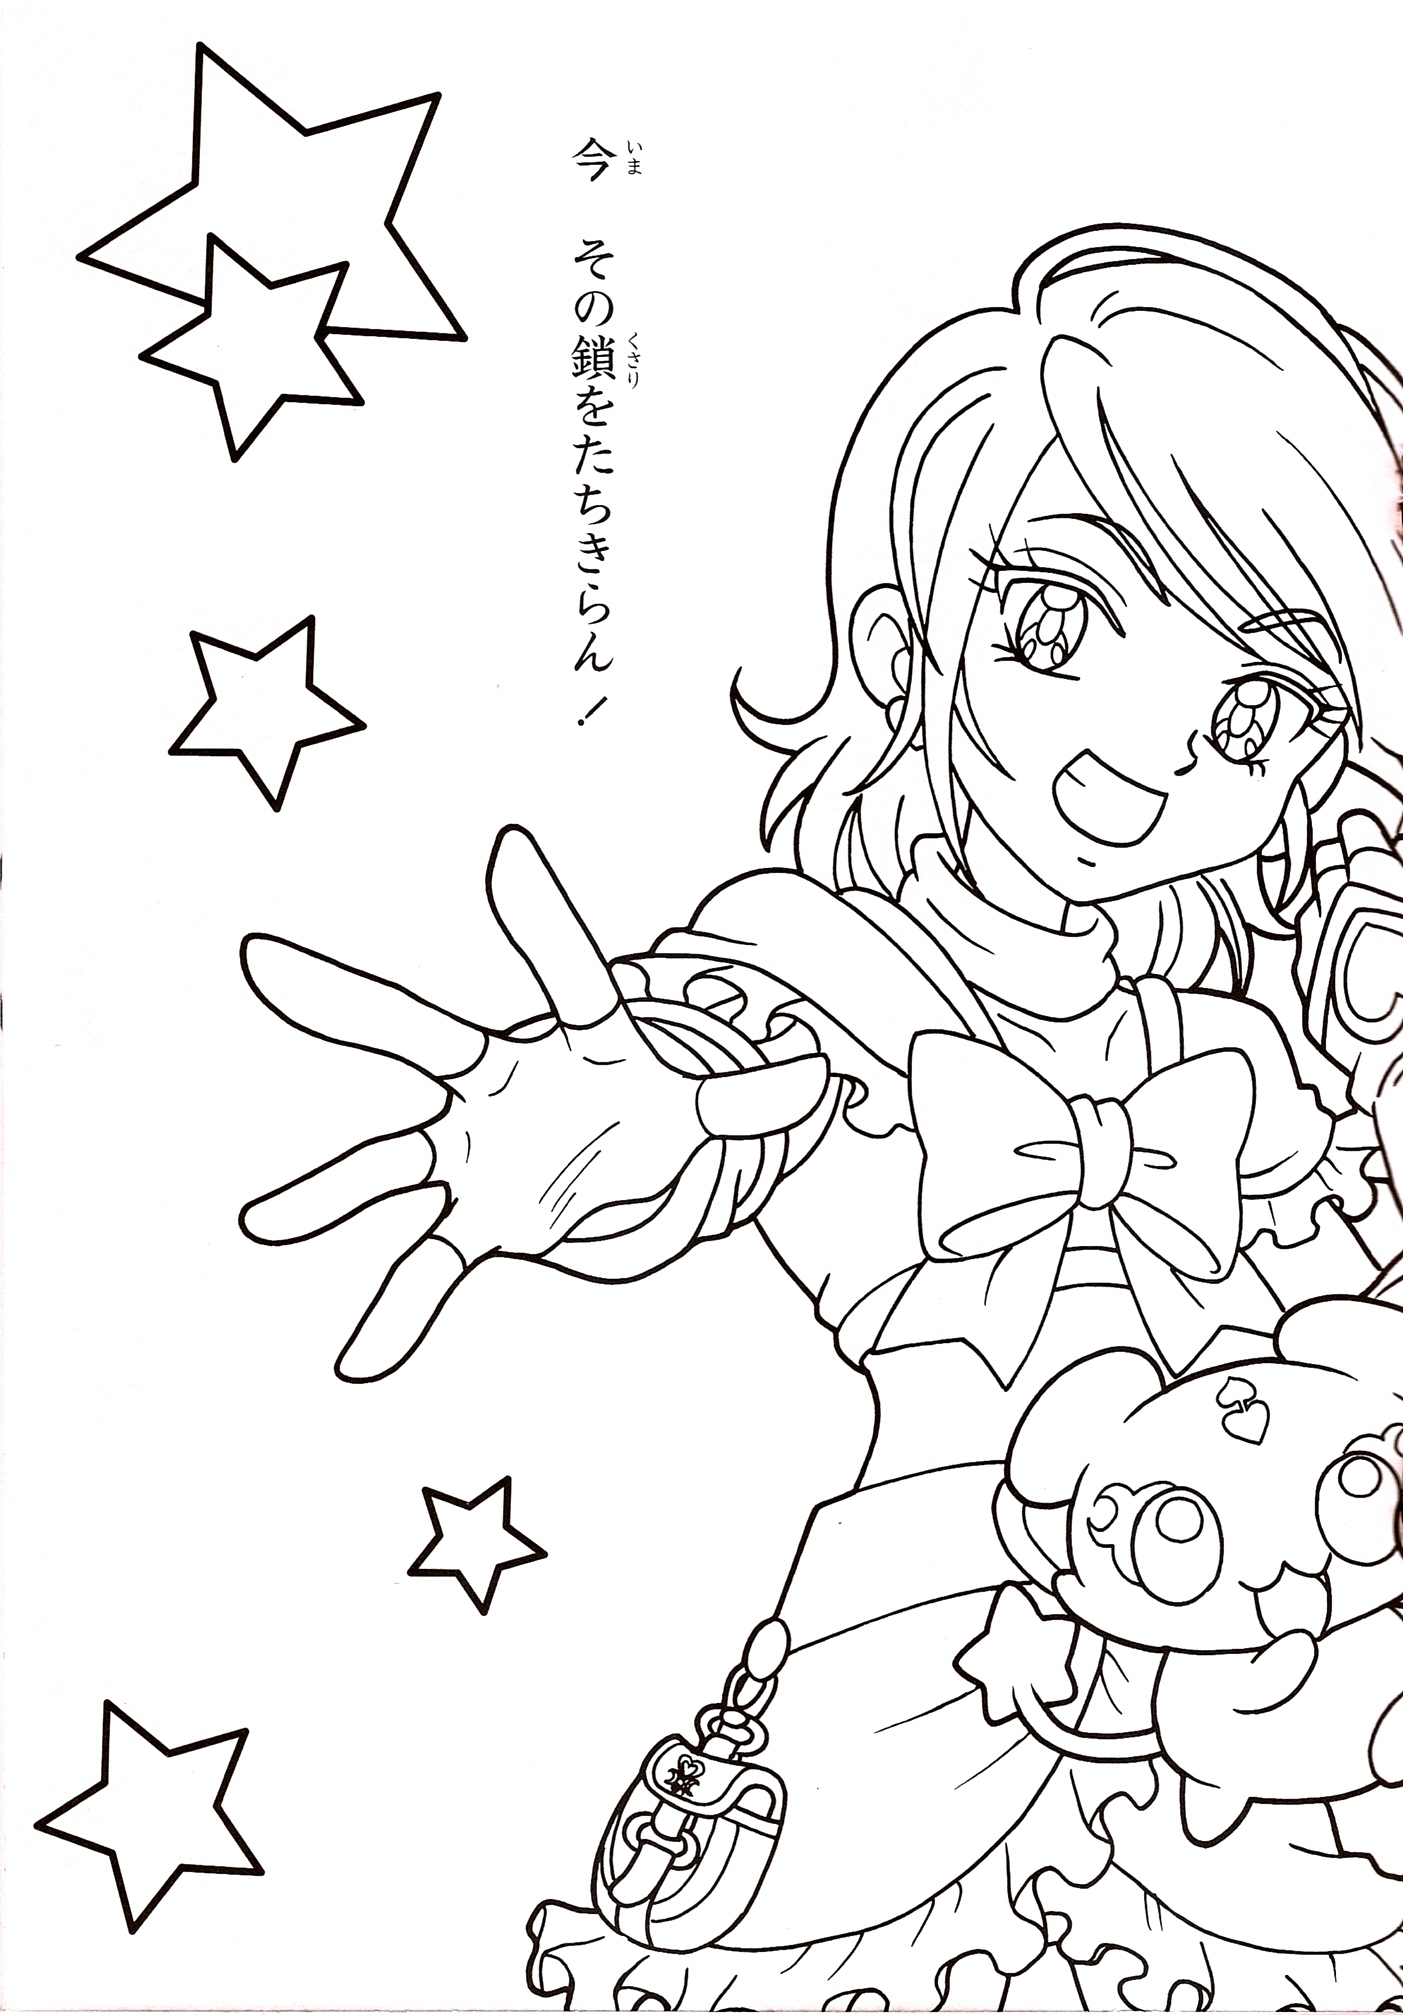 Free Pretty Cure Coloring Pages Pretty Coloring Pages